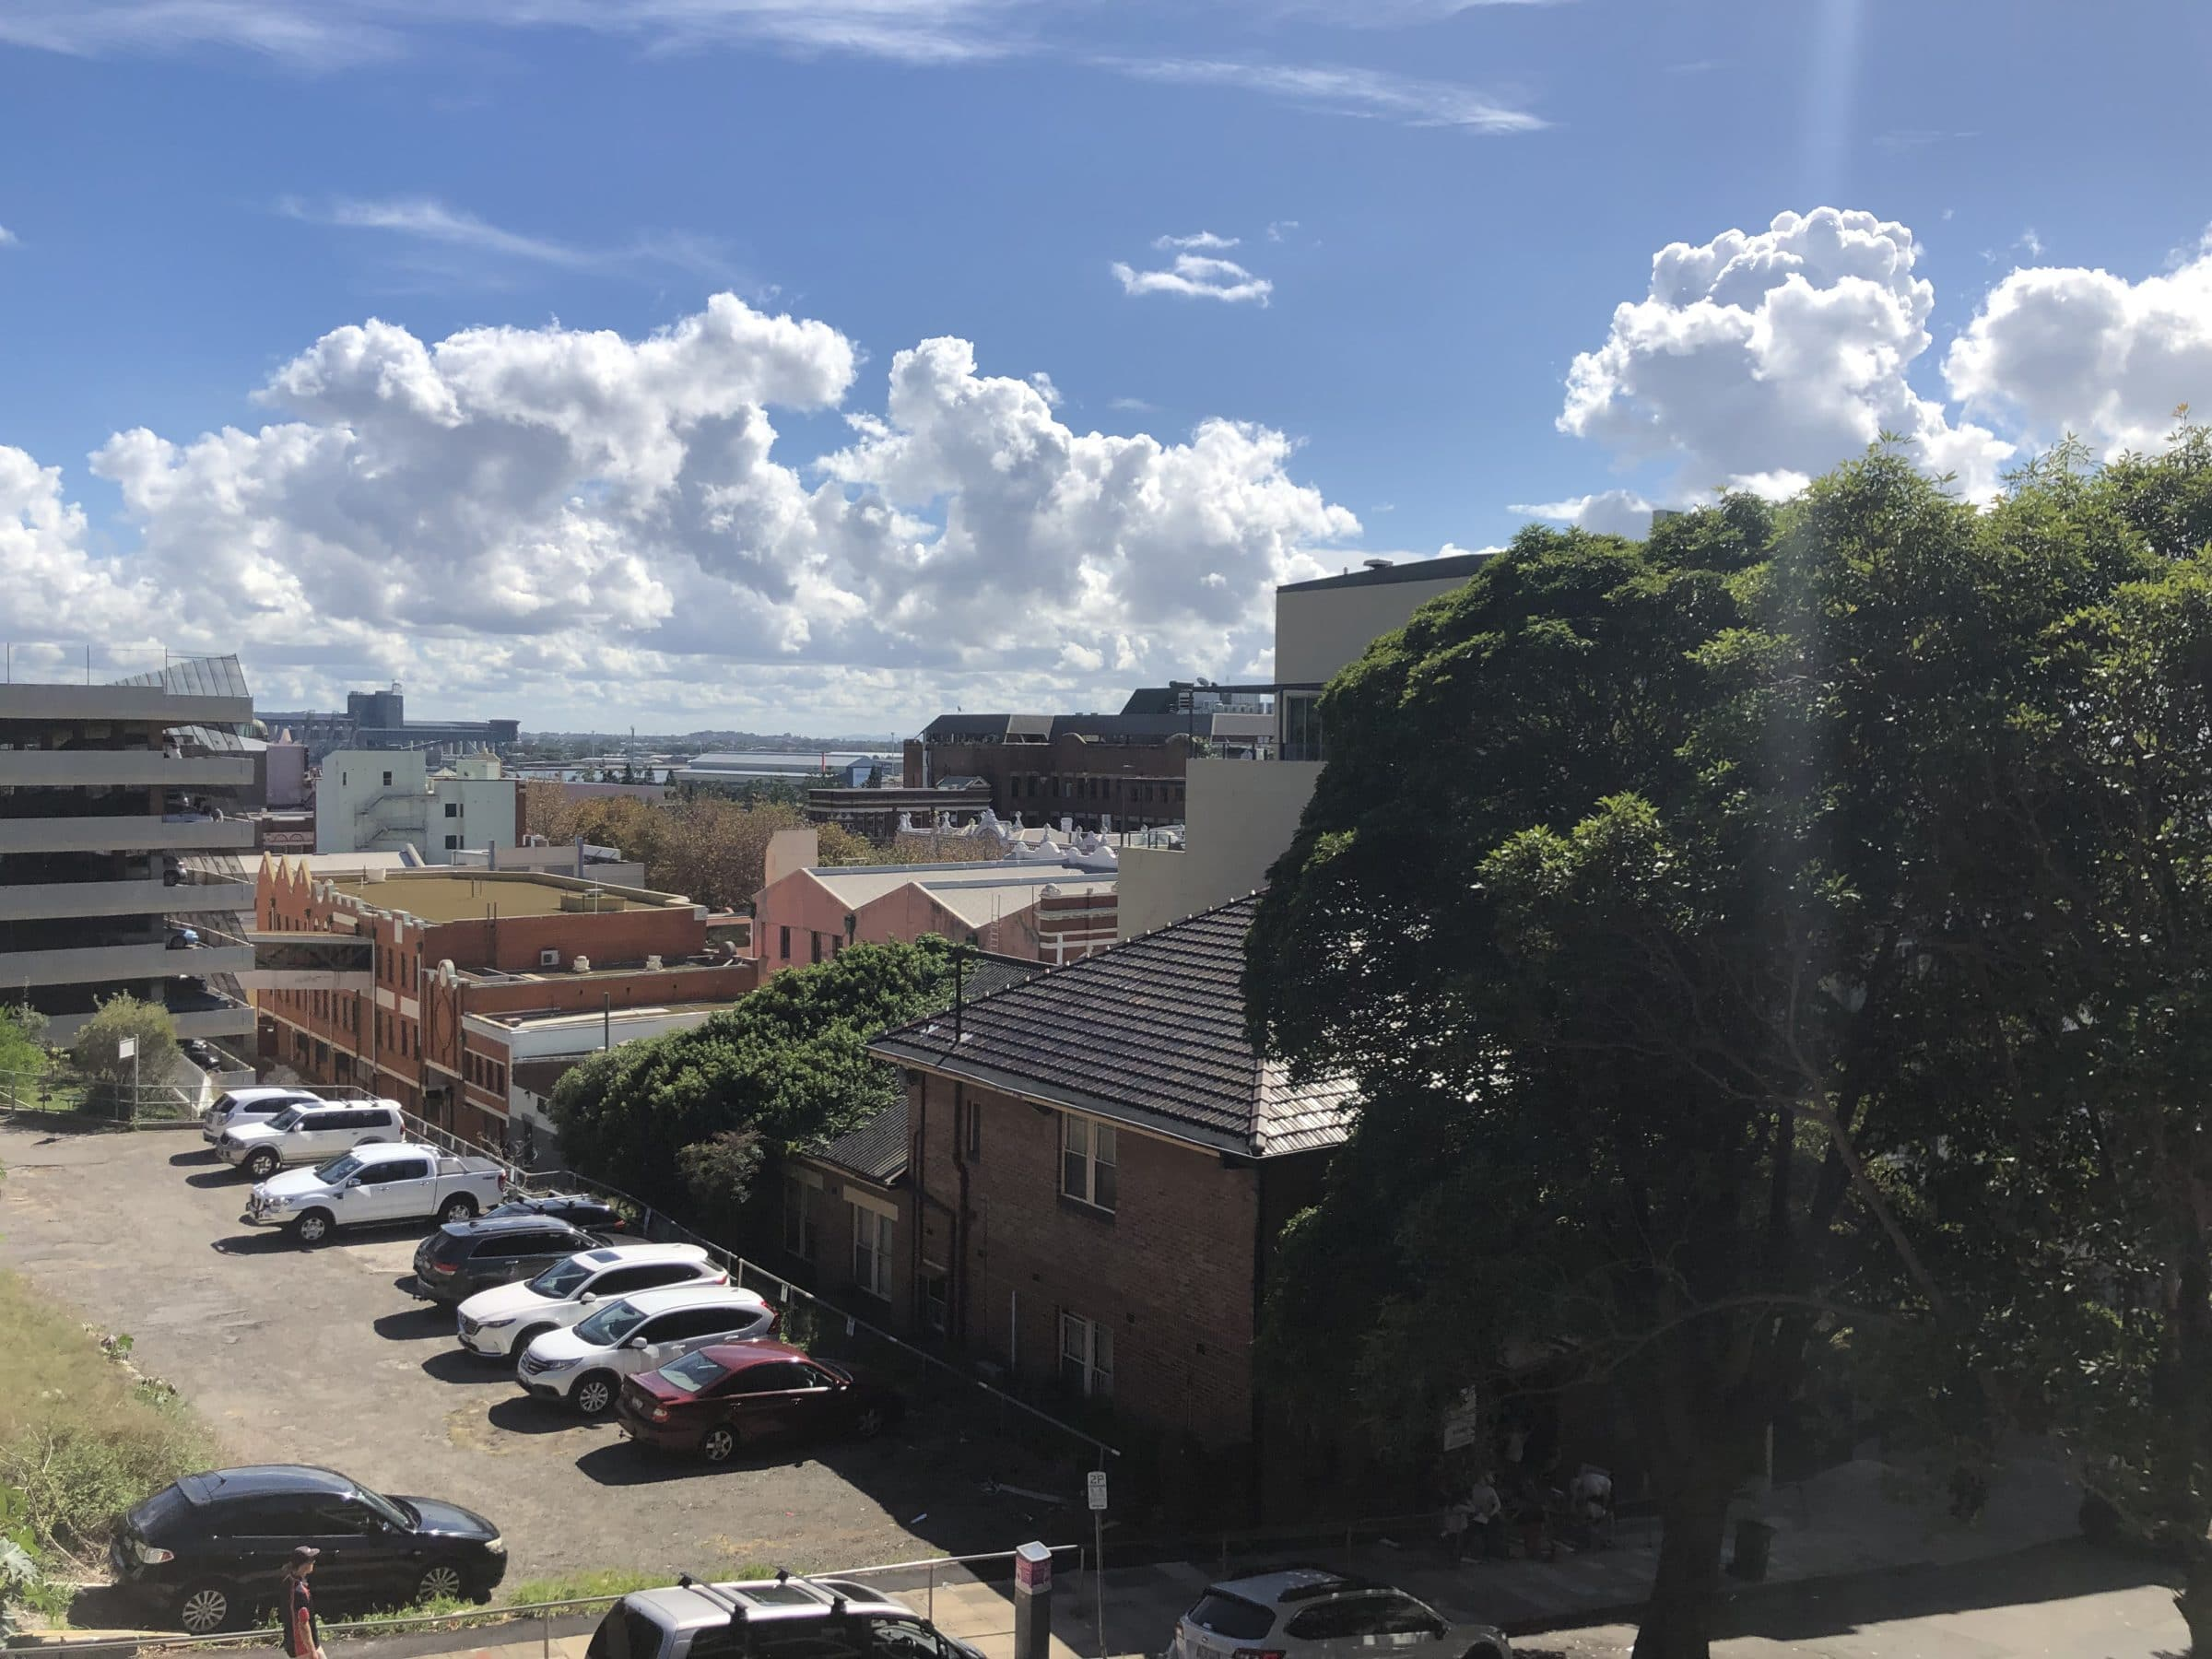 Herald Apartments - https://www.newcastleapartments.com.au/wp-content/uploads/2019/12/Hearld-scaled.jpg